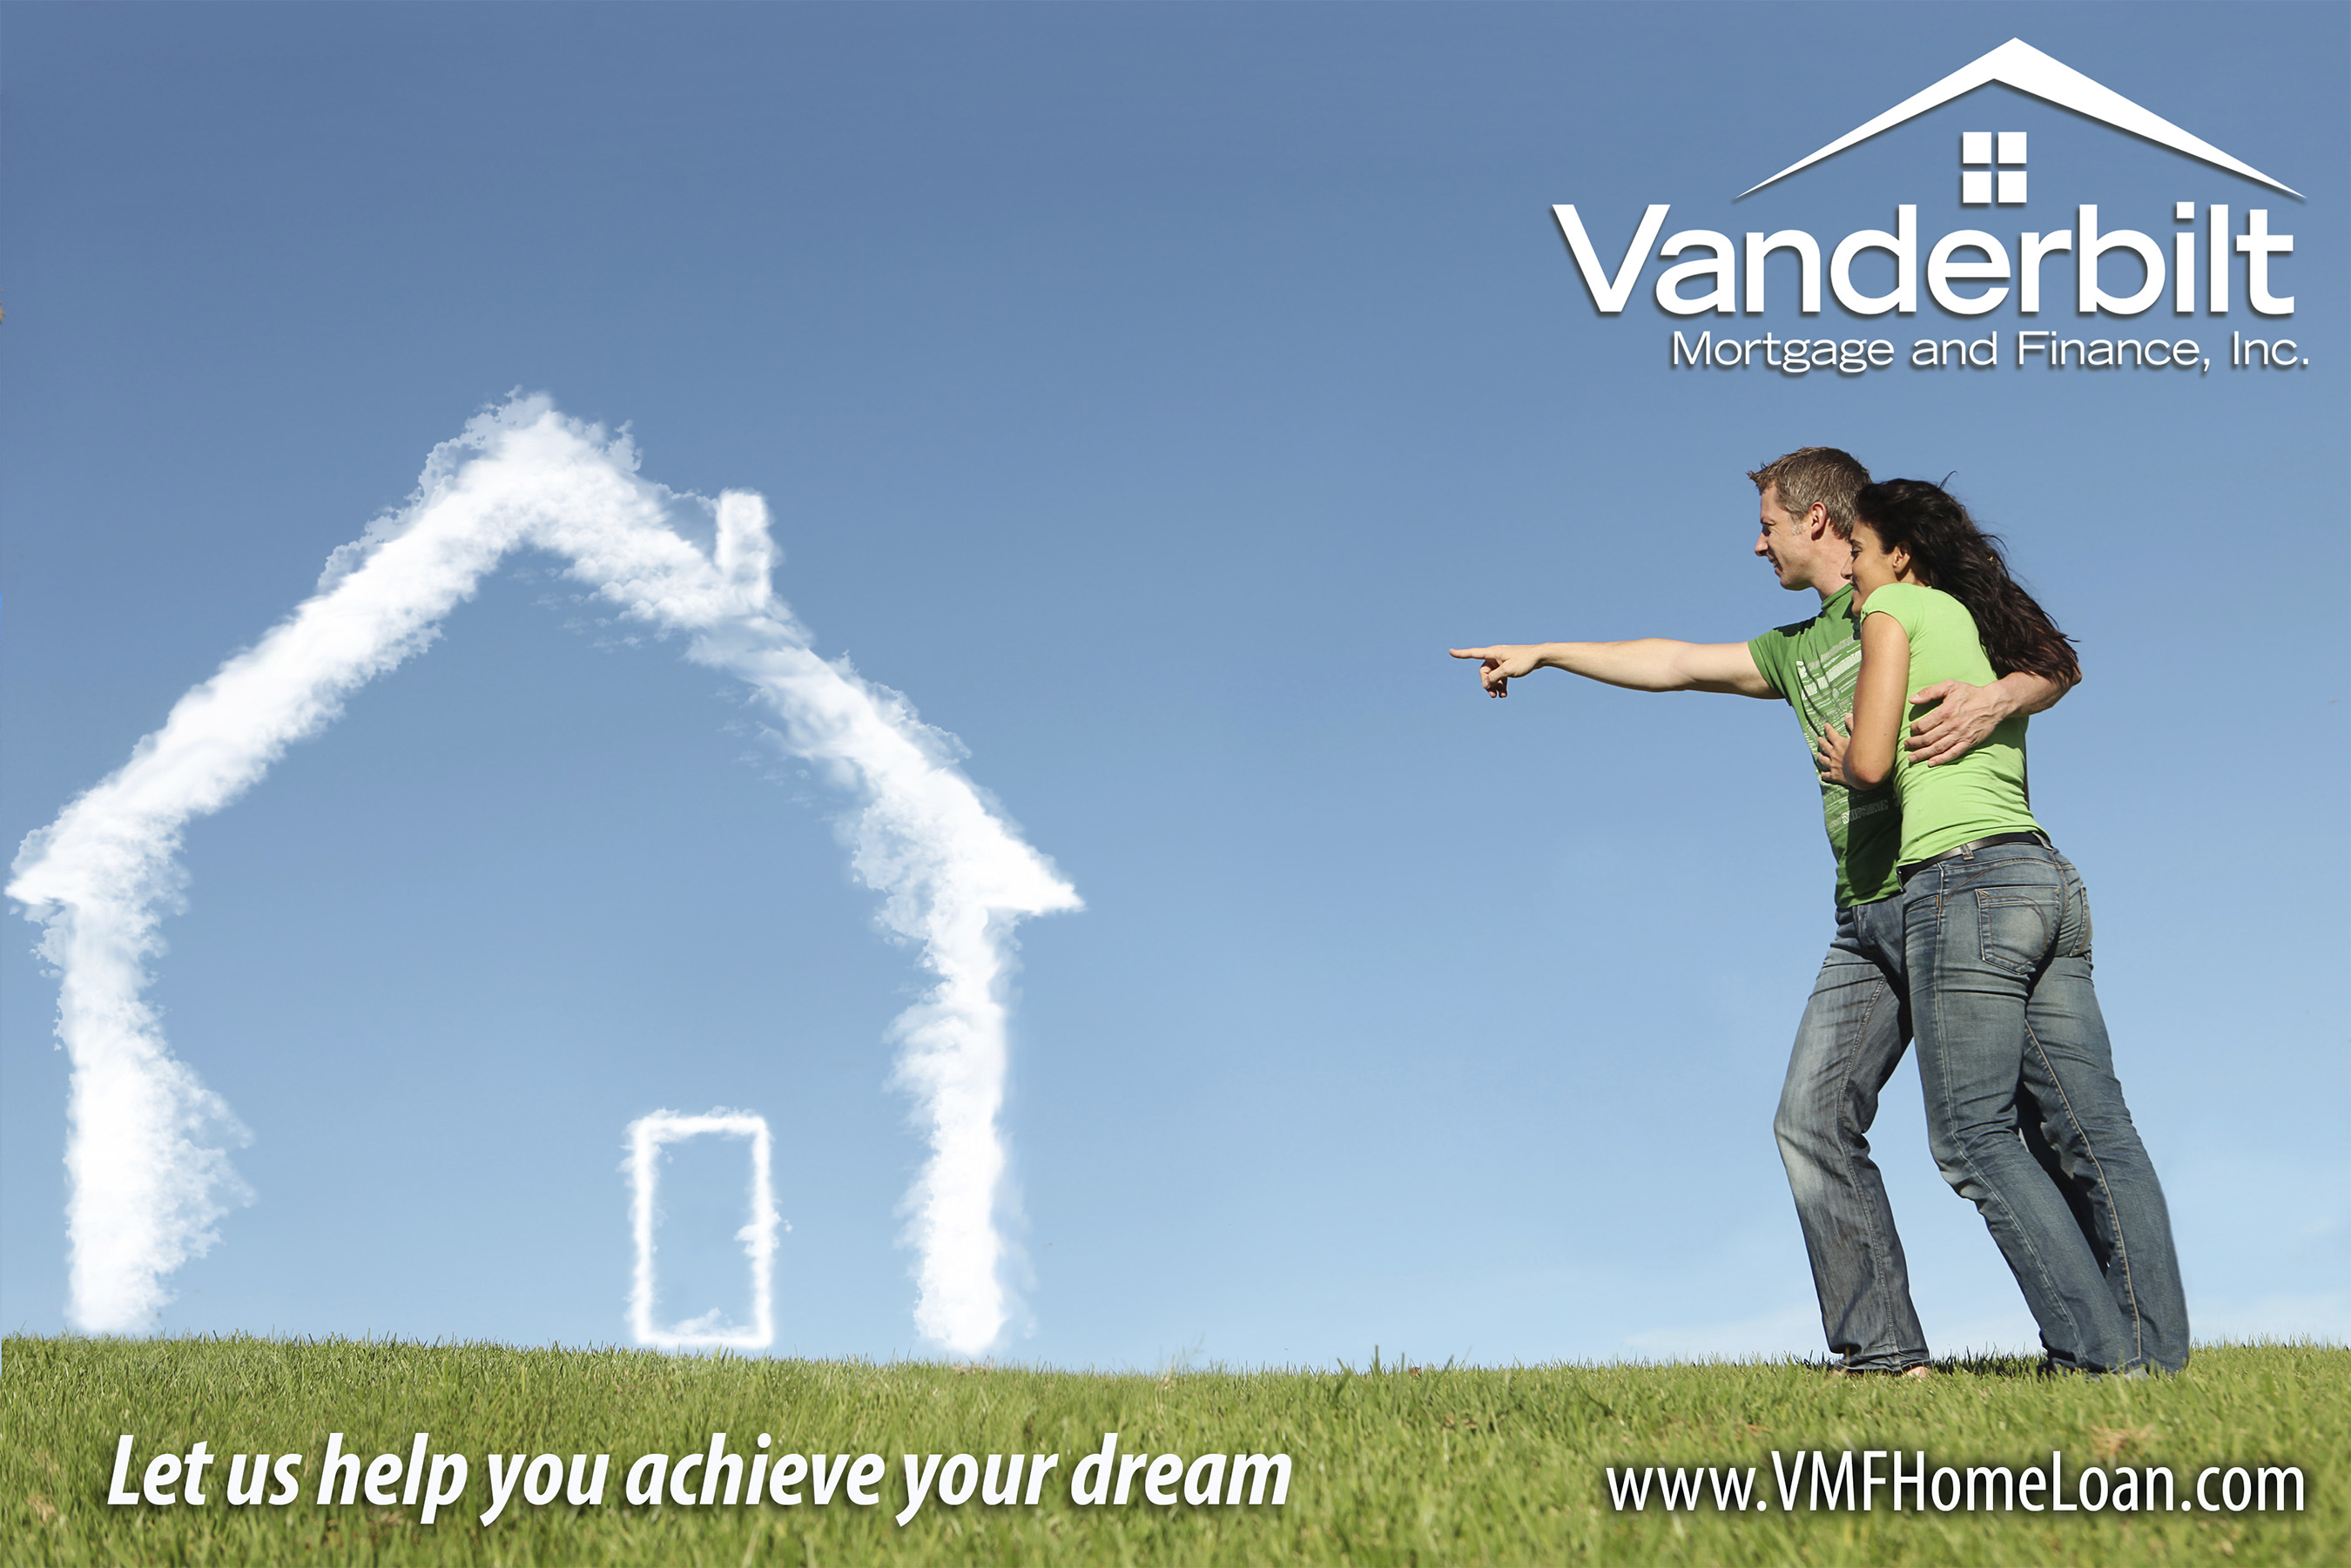 vanderbilt mortgage and finance: